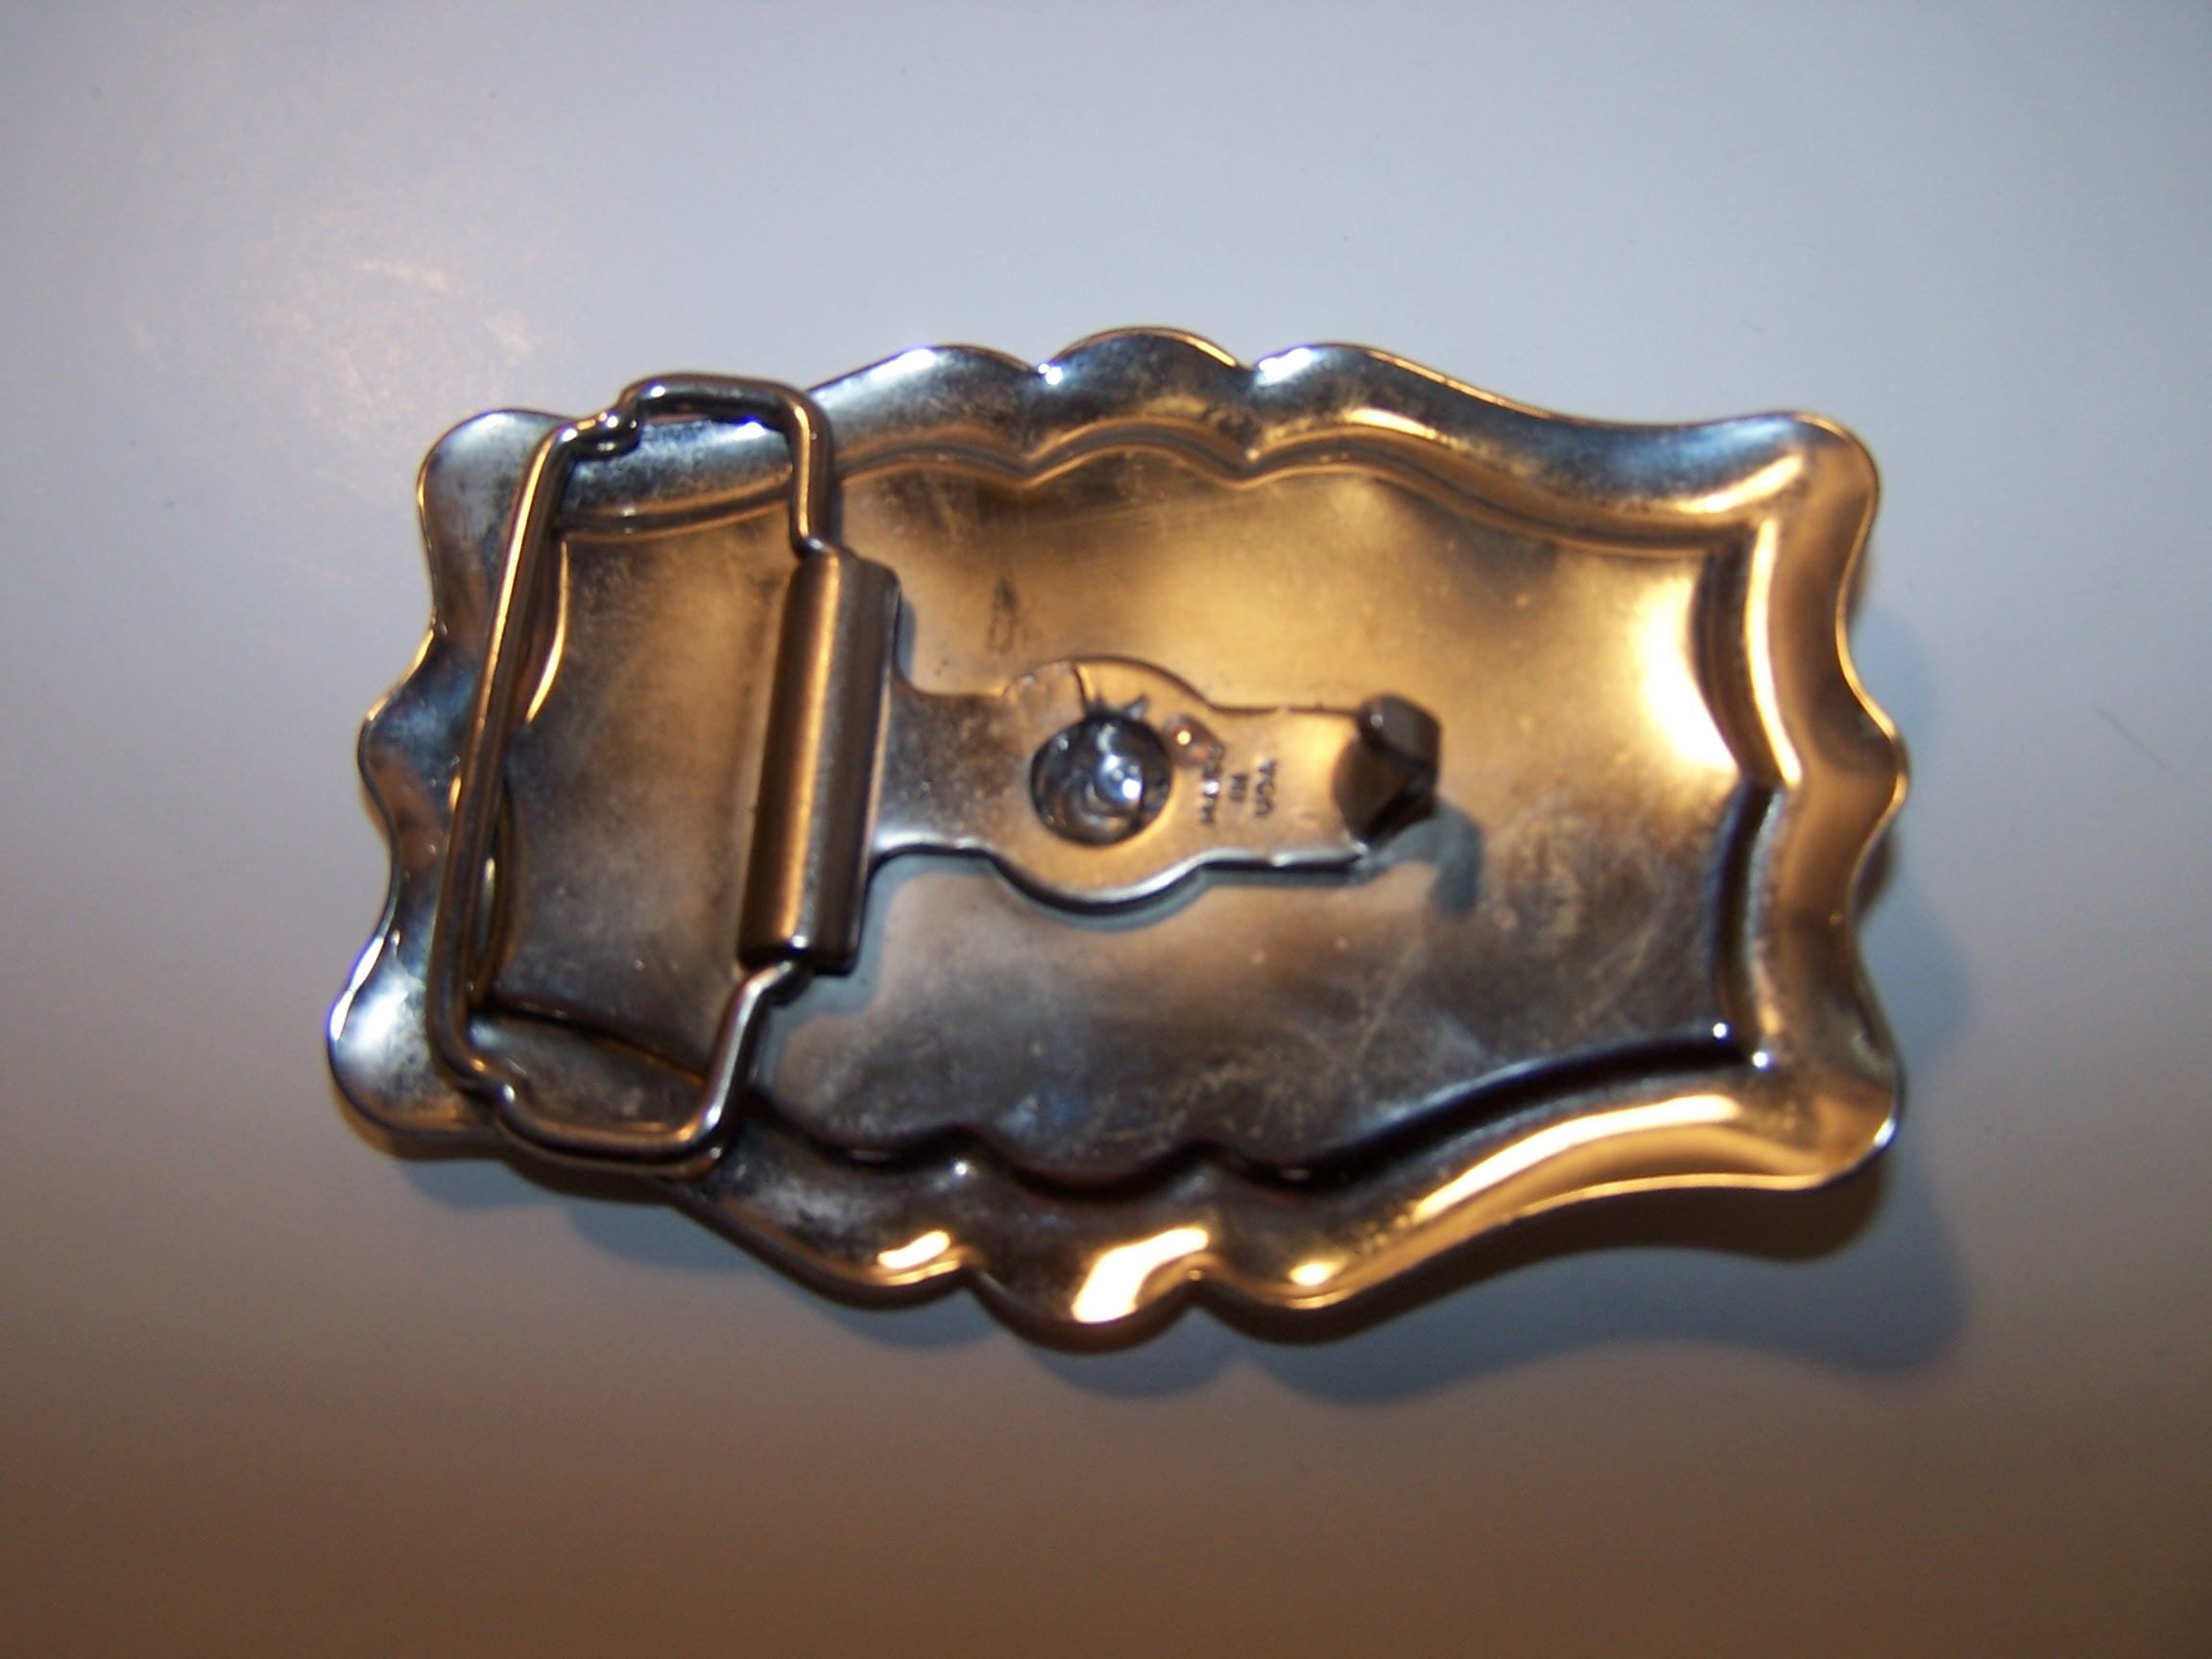 Image 3 of Square Dance Belt Buckle, Silver and Black, USA